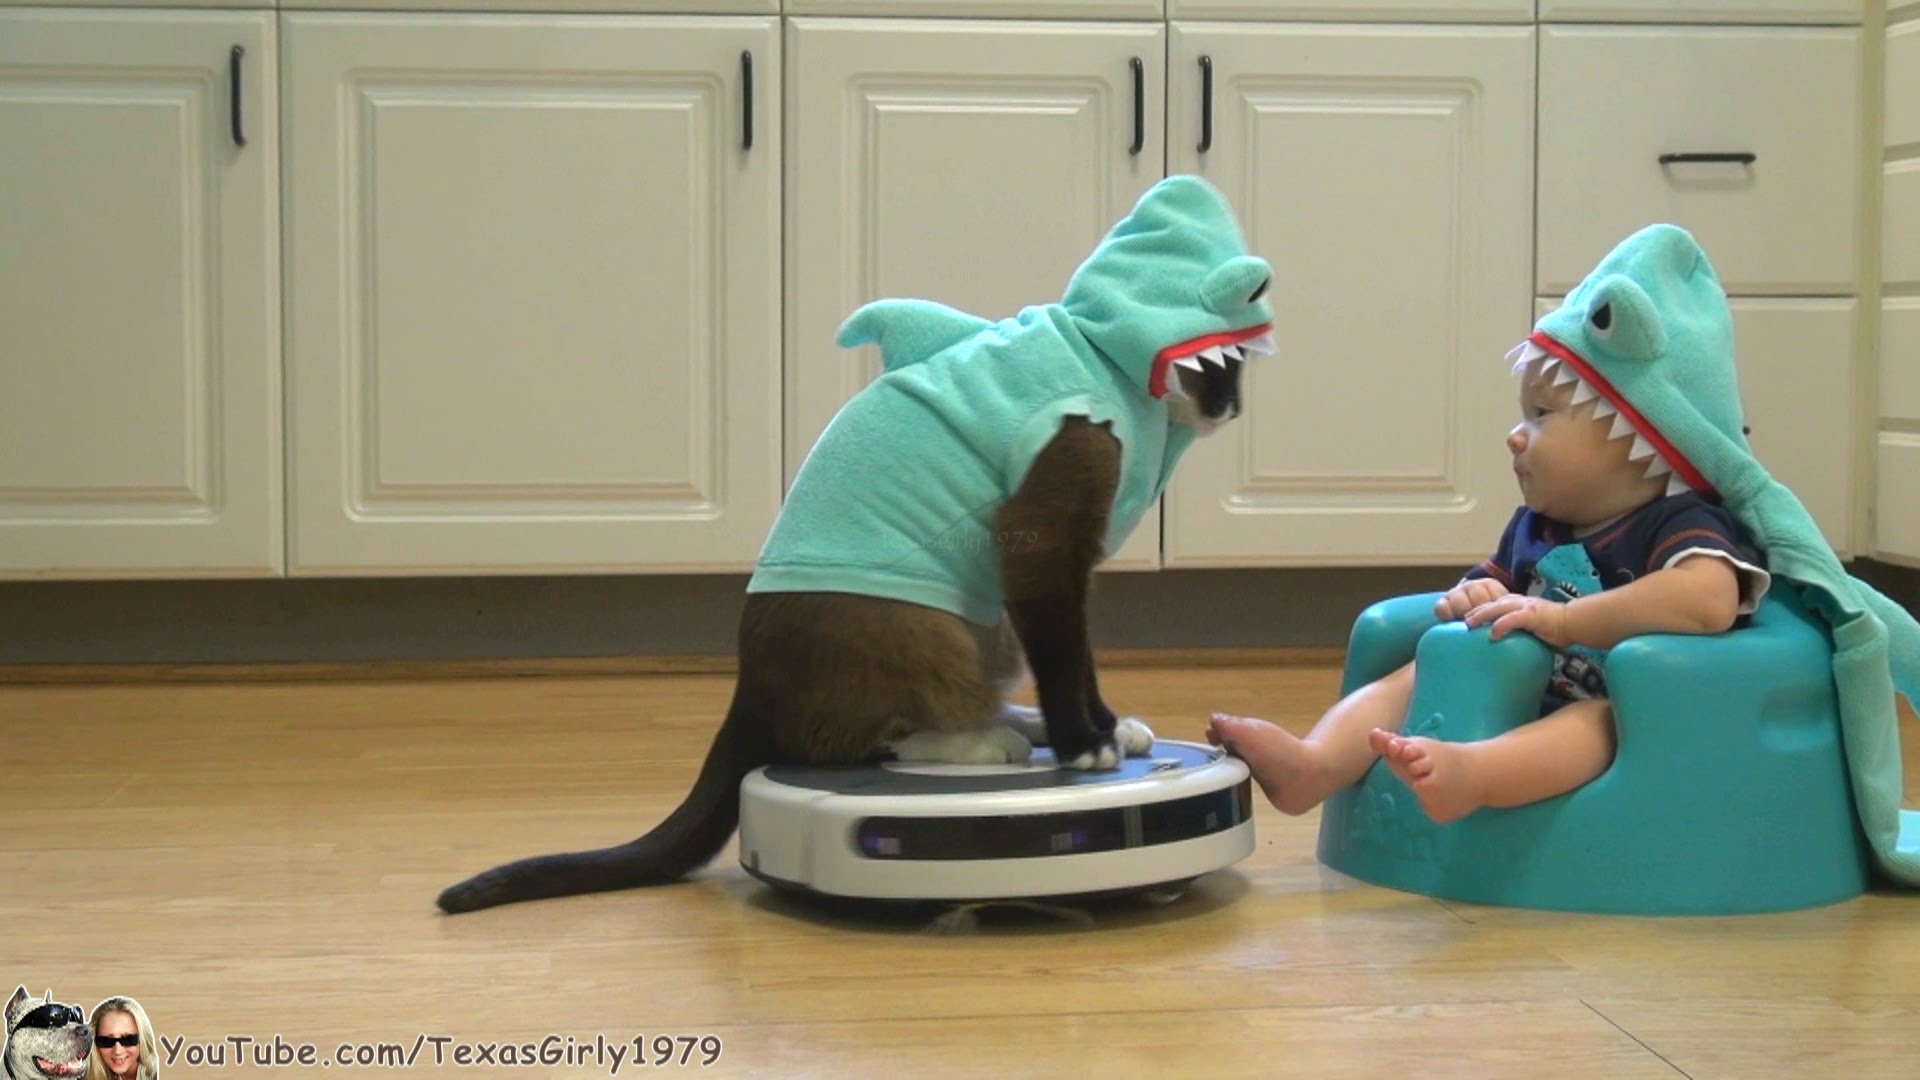 Cat Wearing a Shark Costume Entertains Baby Also Dressed